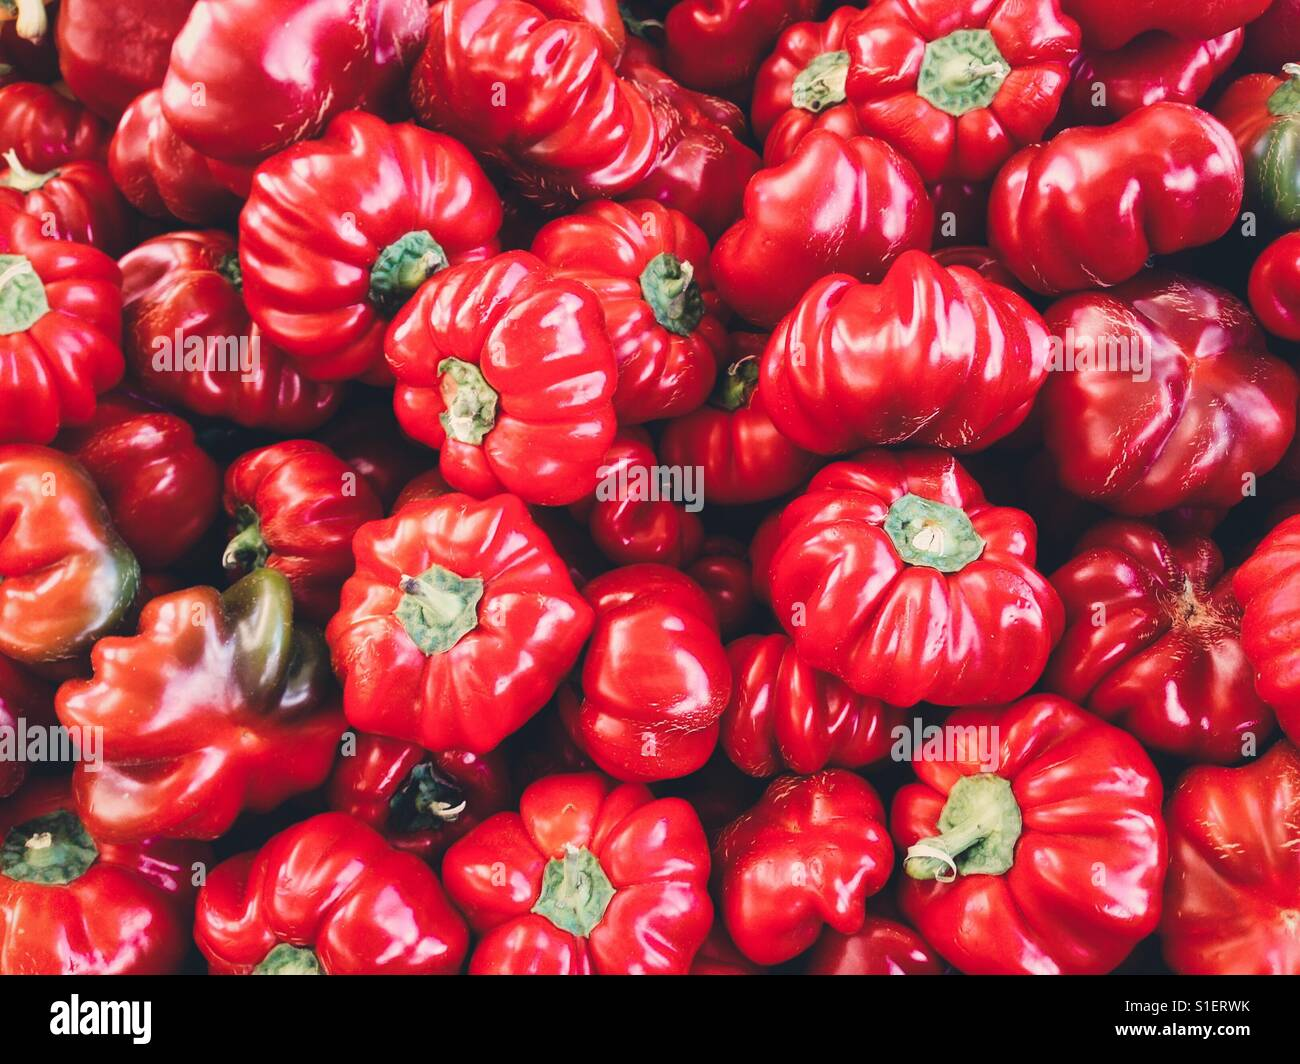 Farm fresh pimento peppers - Stock Image